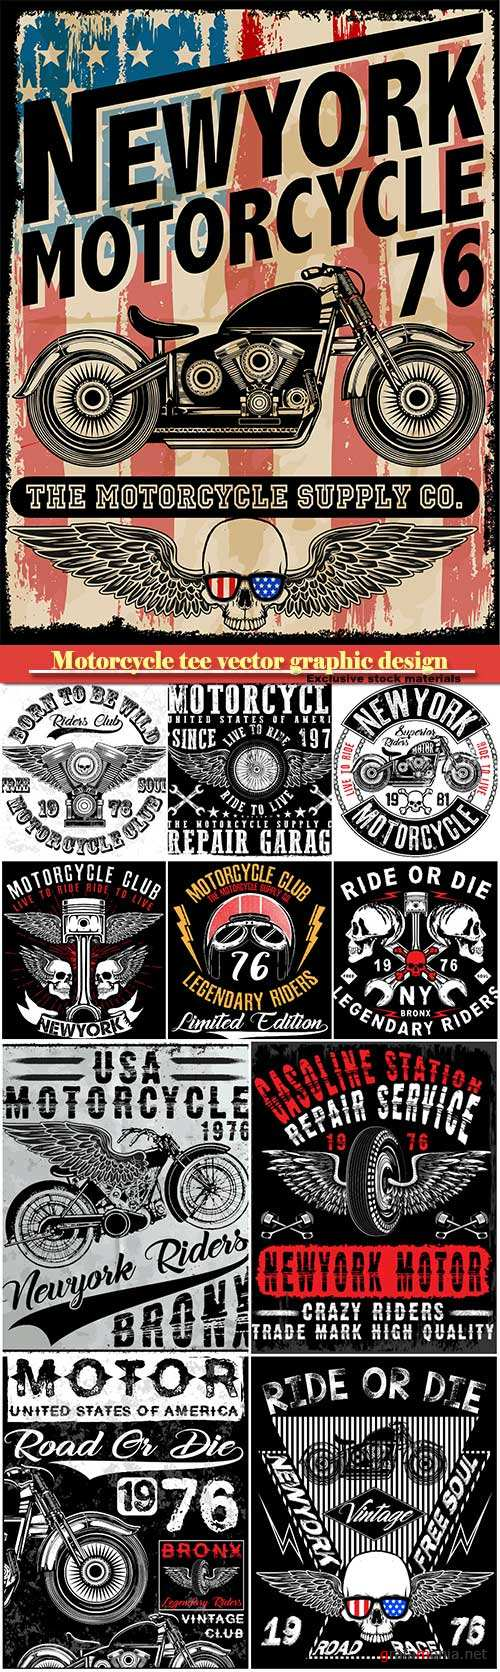 Motorcycle tee vector graphic design, motorcycle label t-shirt design with illustration